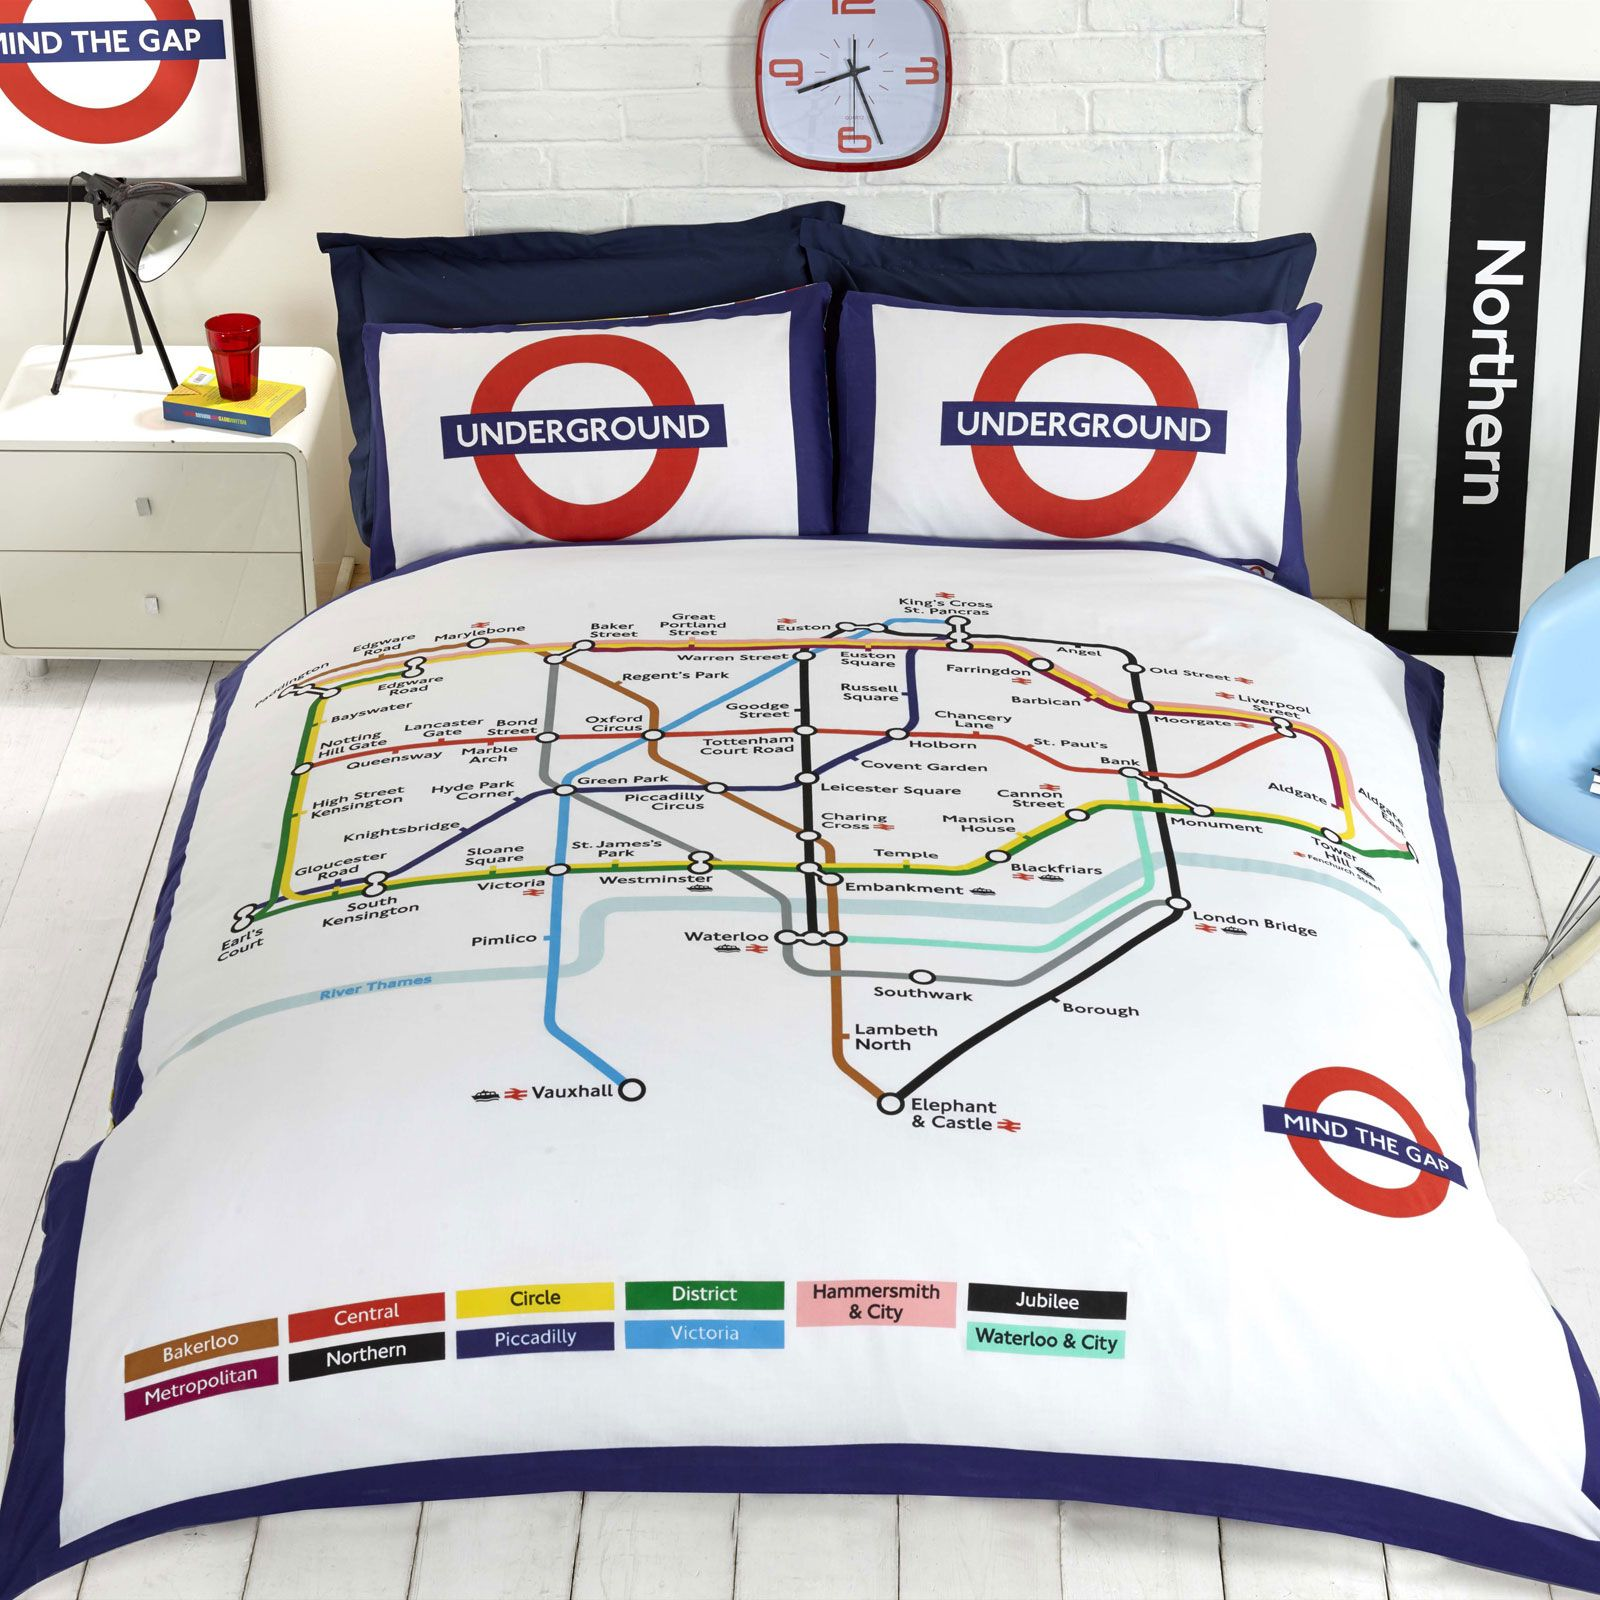 London underground tube map duvet cover set bedding reversible london underground tube map duvet cover set bedding gumiabroncs Images